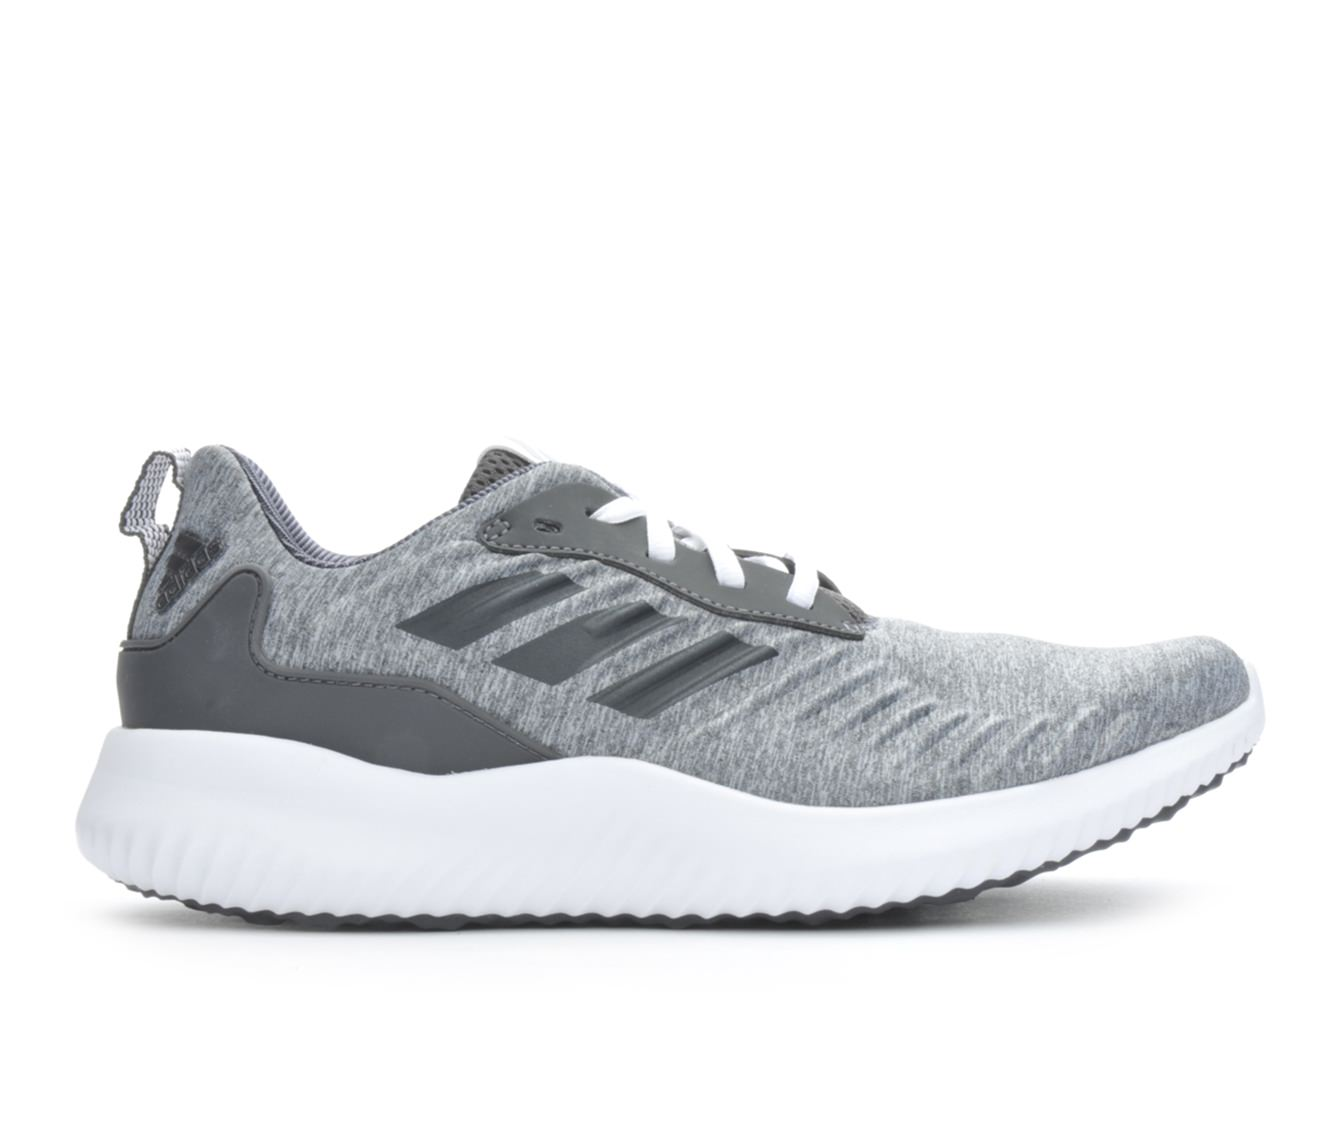 Men's Adidas AlphaBounce RC Running Shoes (Grey - Size 12) 1655088